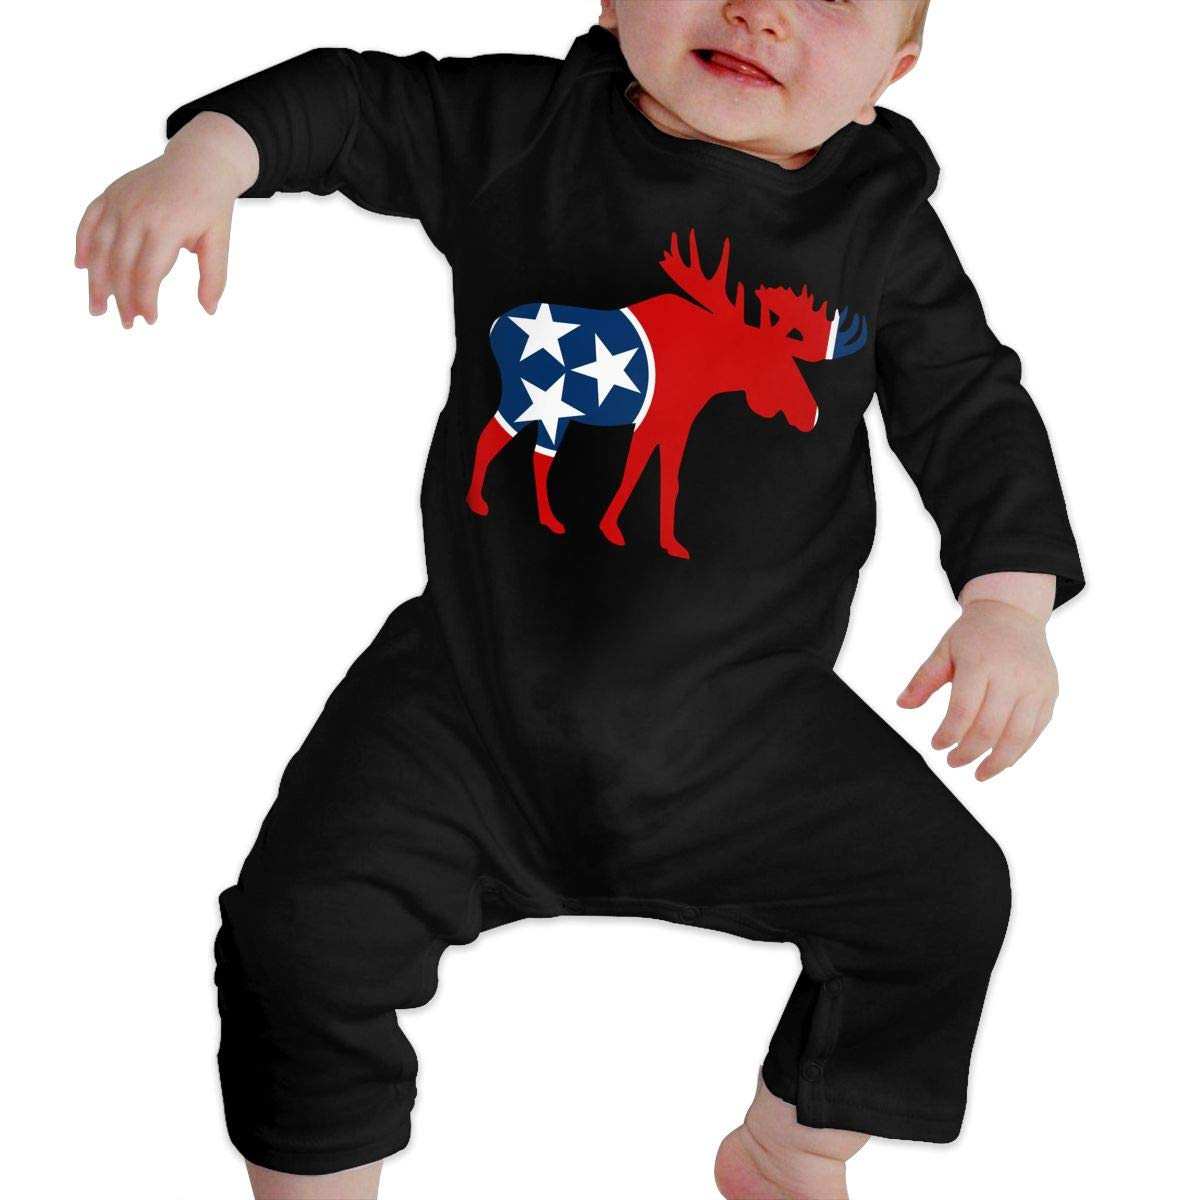 Soft Tennessee Moose Playsuit U99oi-9 Long Sleeve Cotton Bodysuit for Unisex Baby